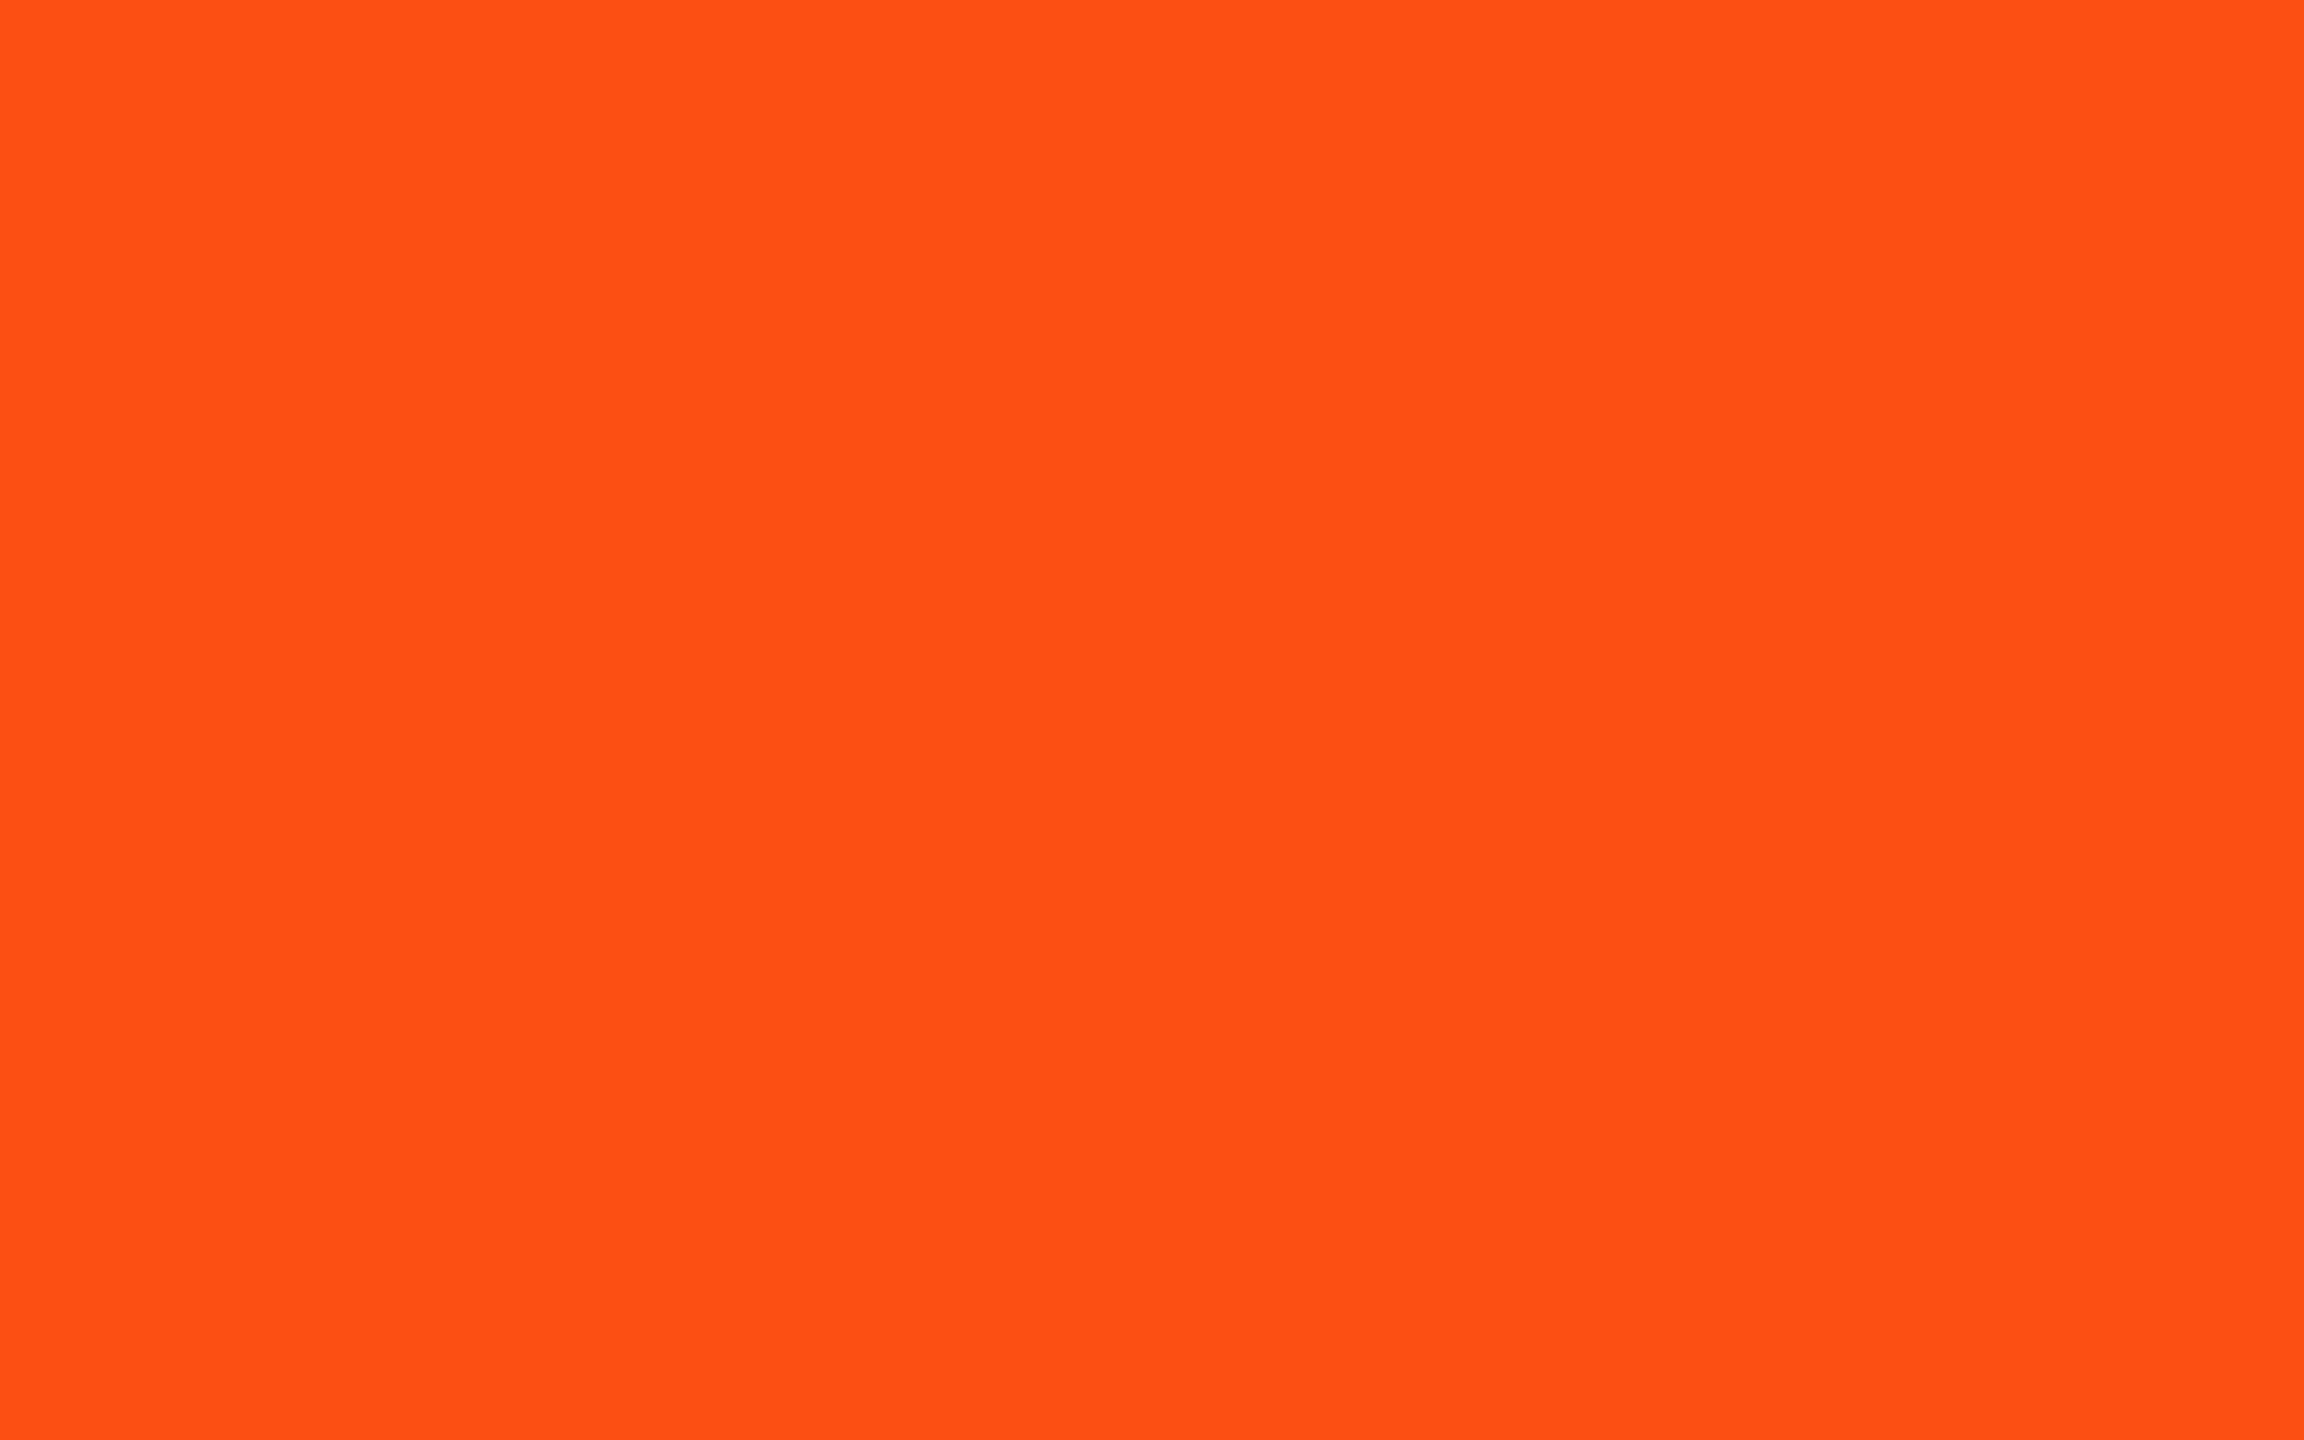 2304x1440 Orioles Orange Solid Color Background